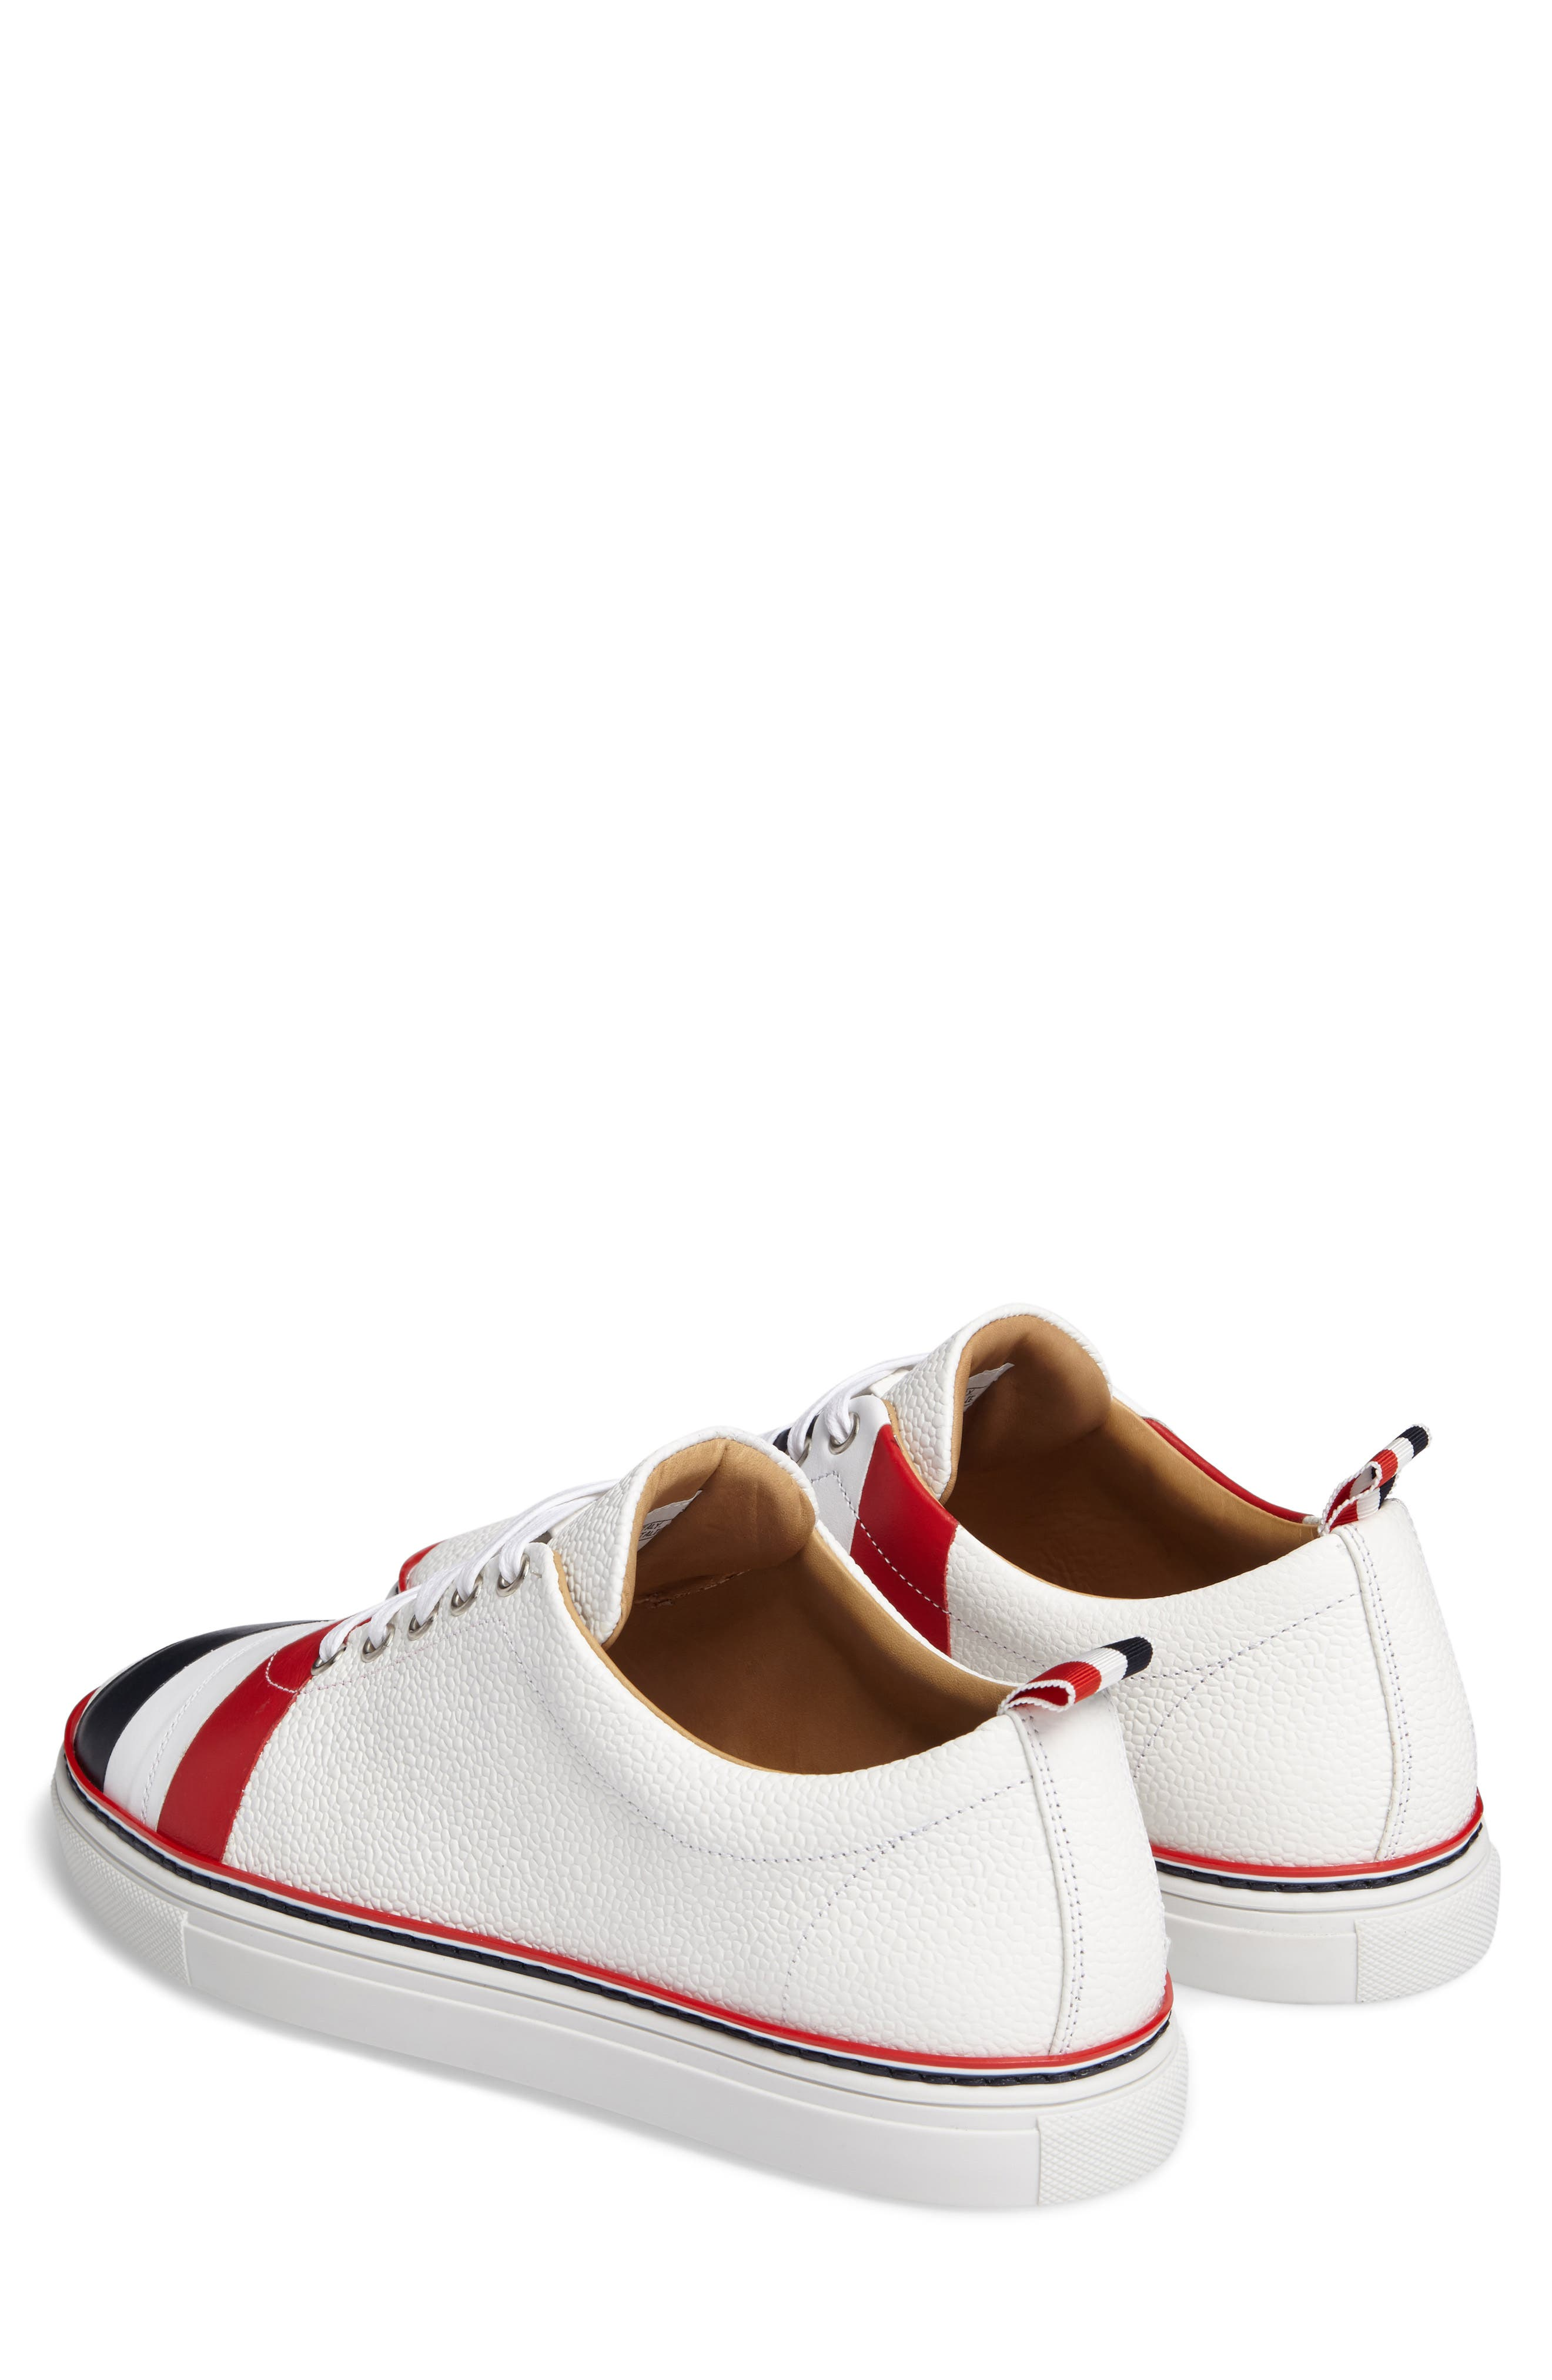 Asymmetrical Stripe Sneaker,                             Alternate thumbnail 2, color,                             100 White